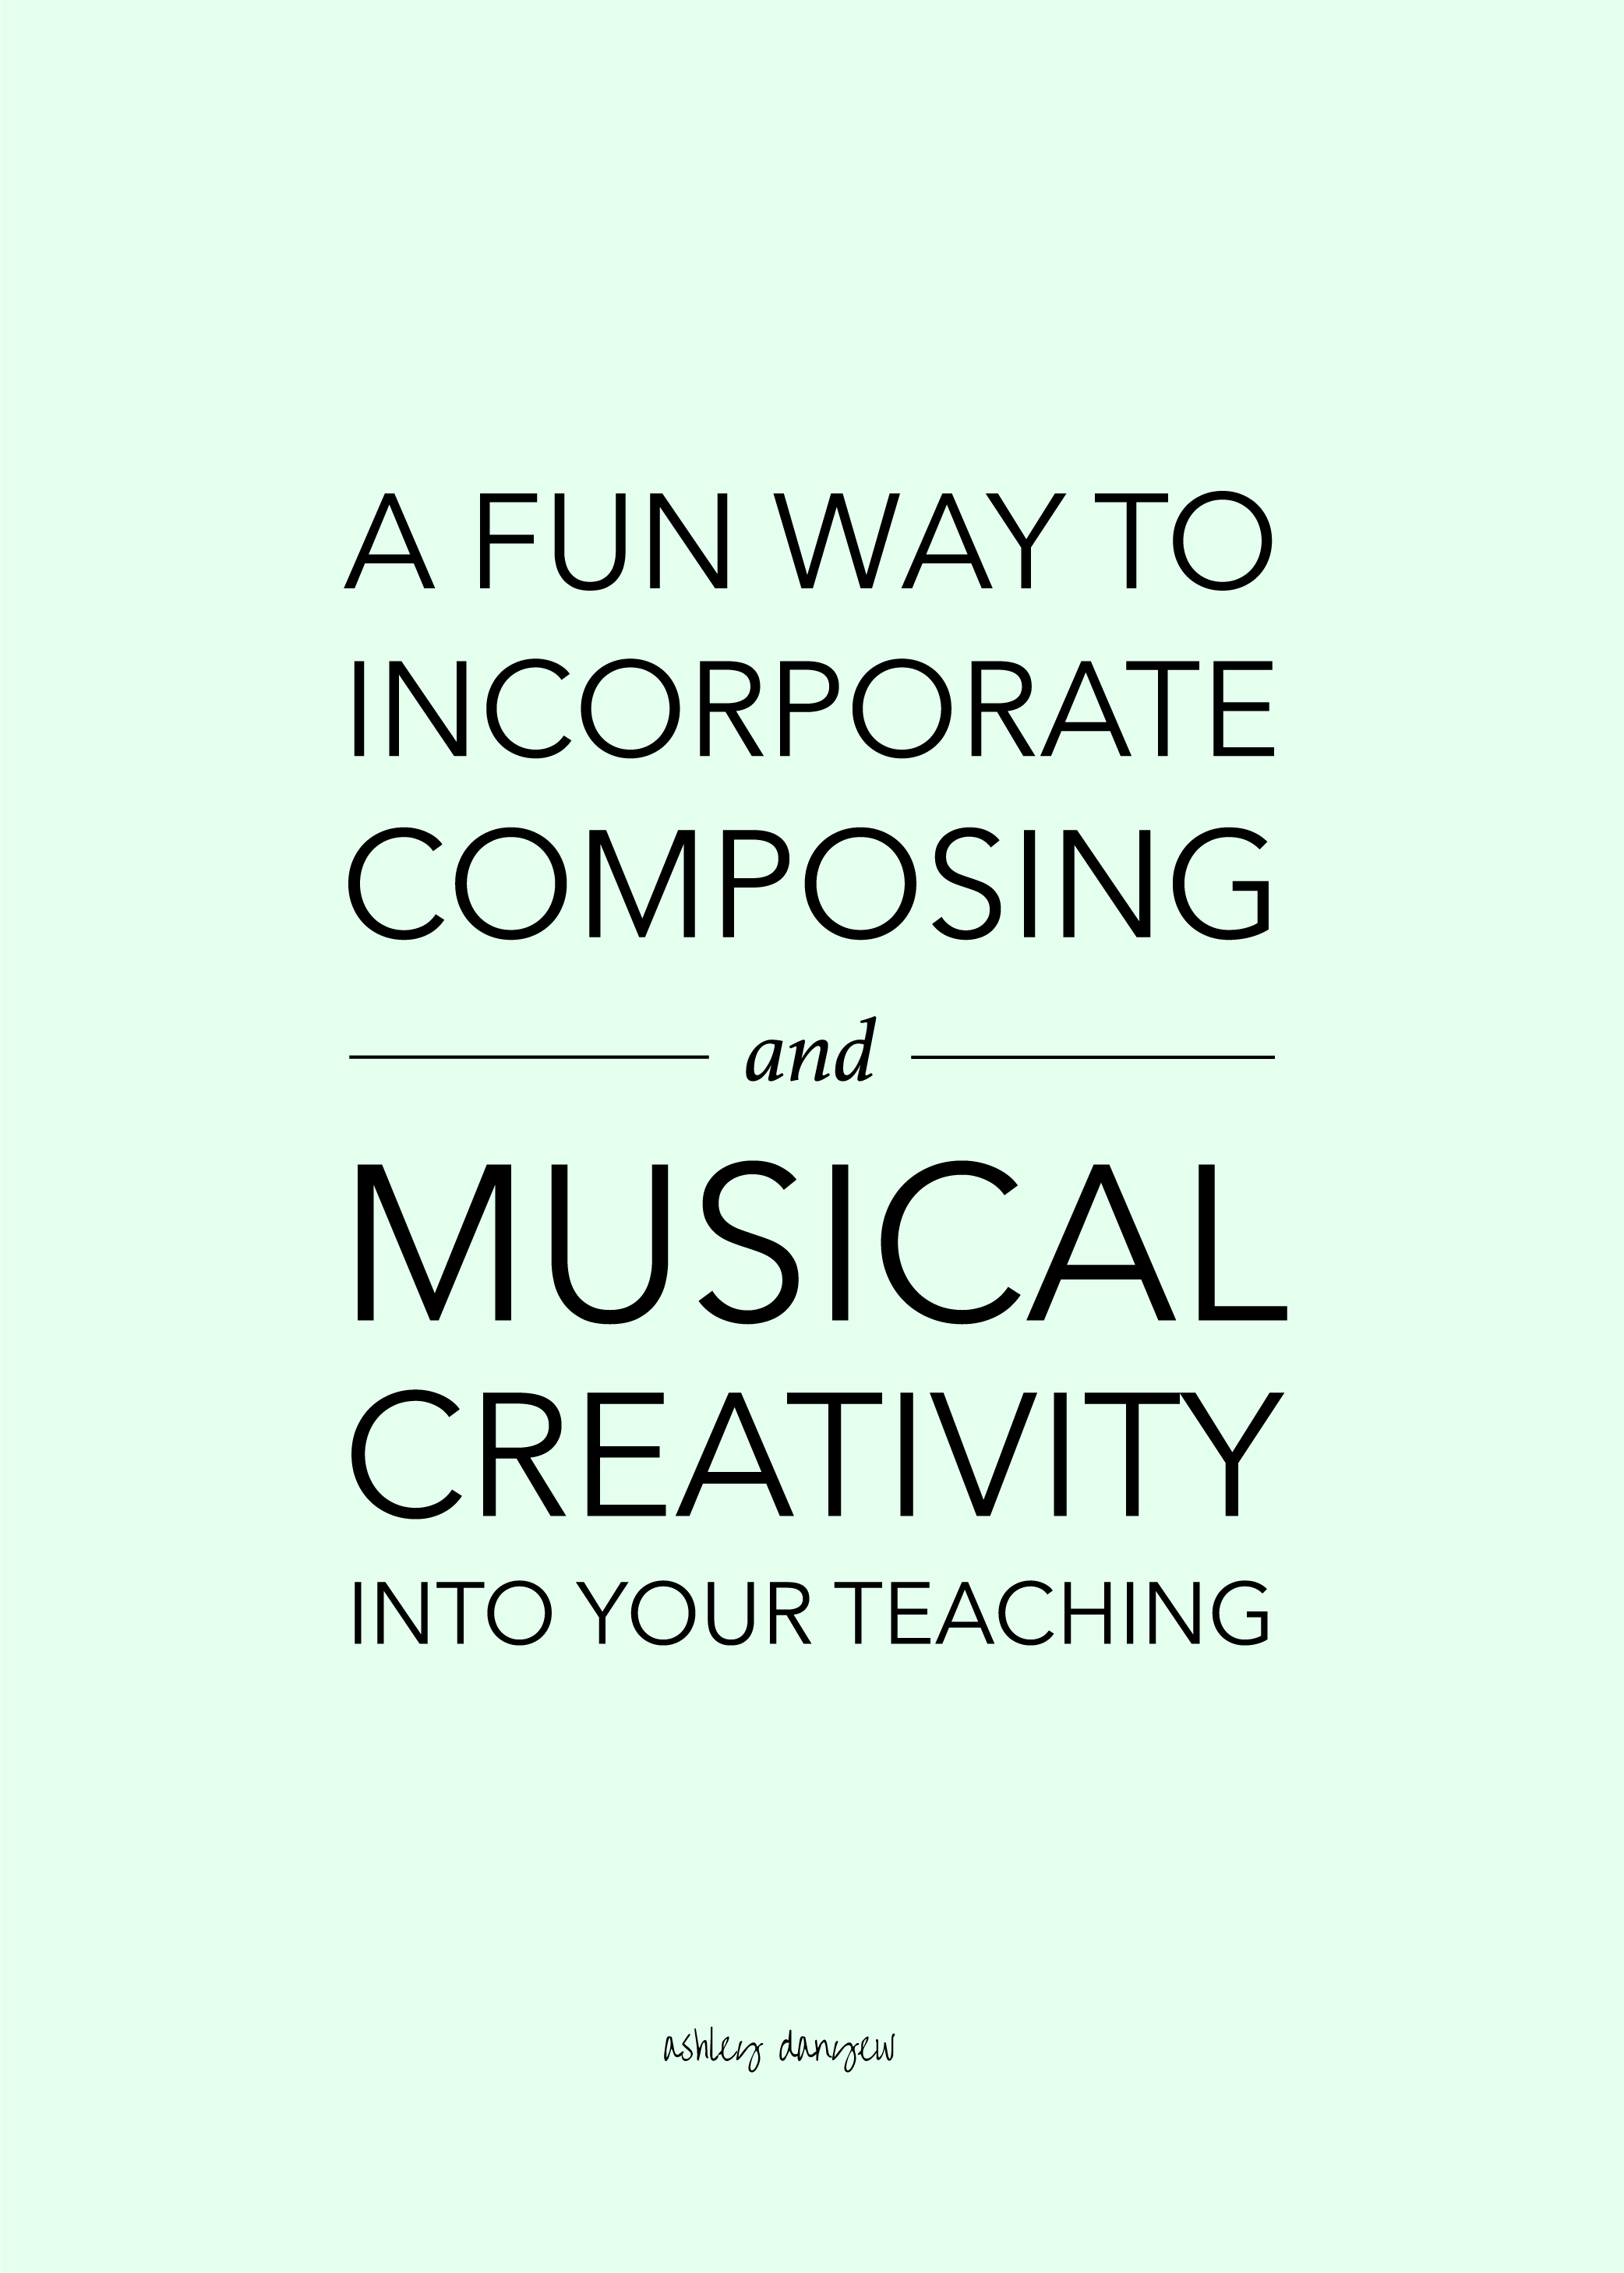 A Fun Way to Incorporate Composing and Musical Creativity Into Your Teaching-19.png